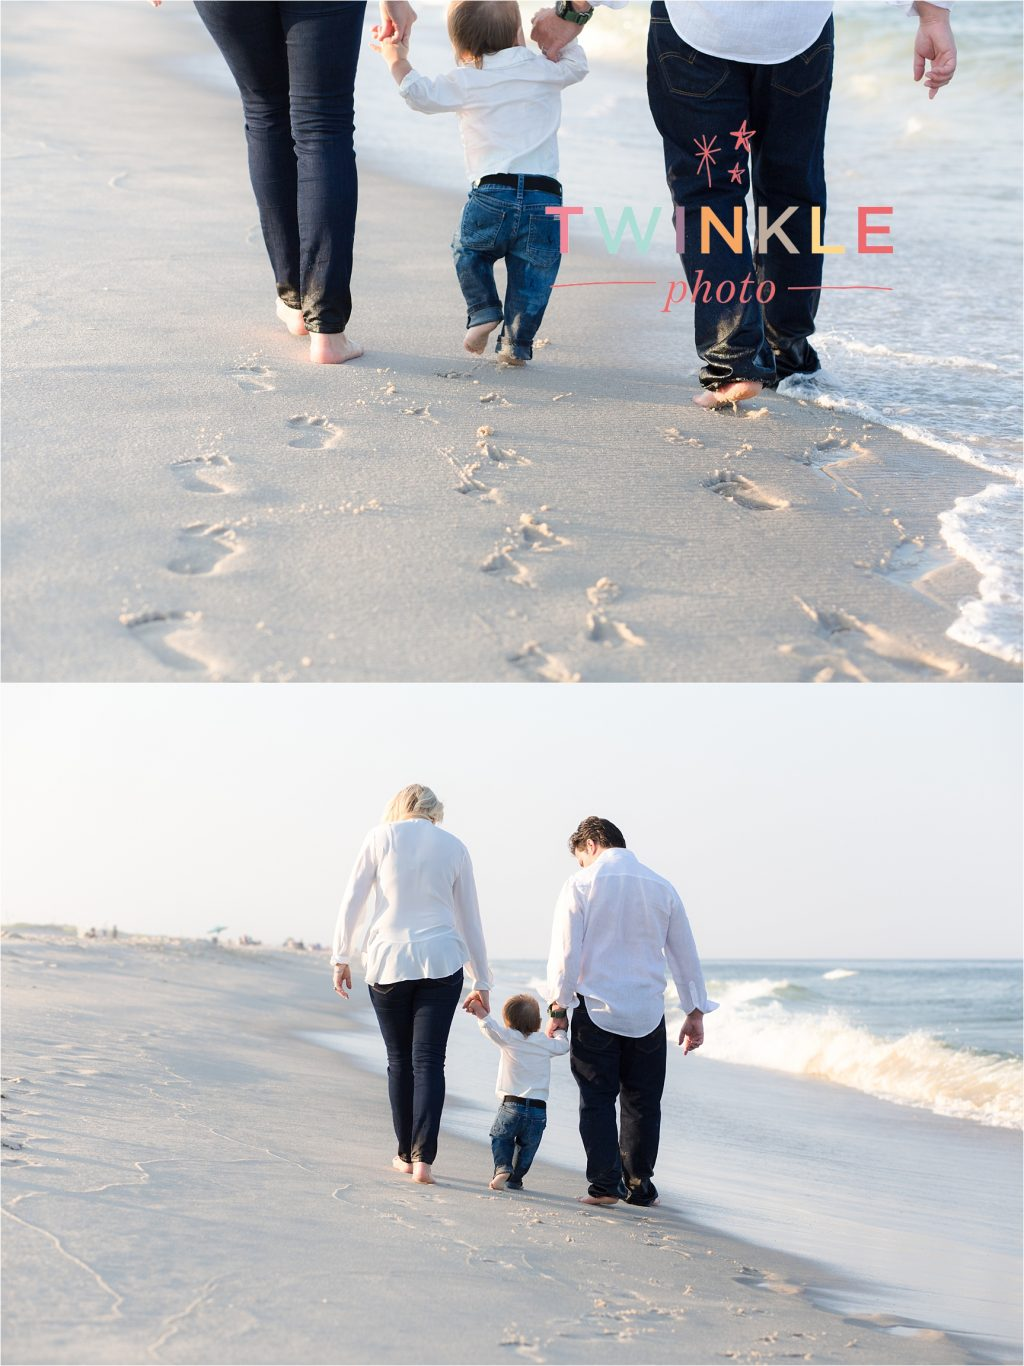 Avalon Stone Harbor Cape May Beach Family Photography Children Photographer Twinkle Photo-06